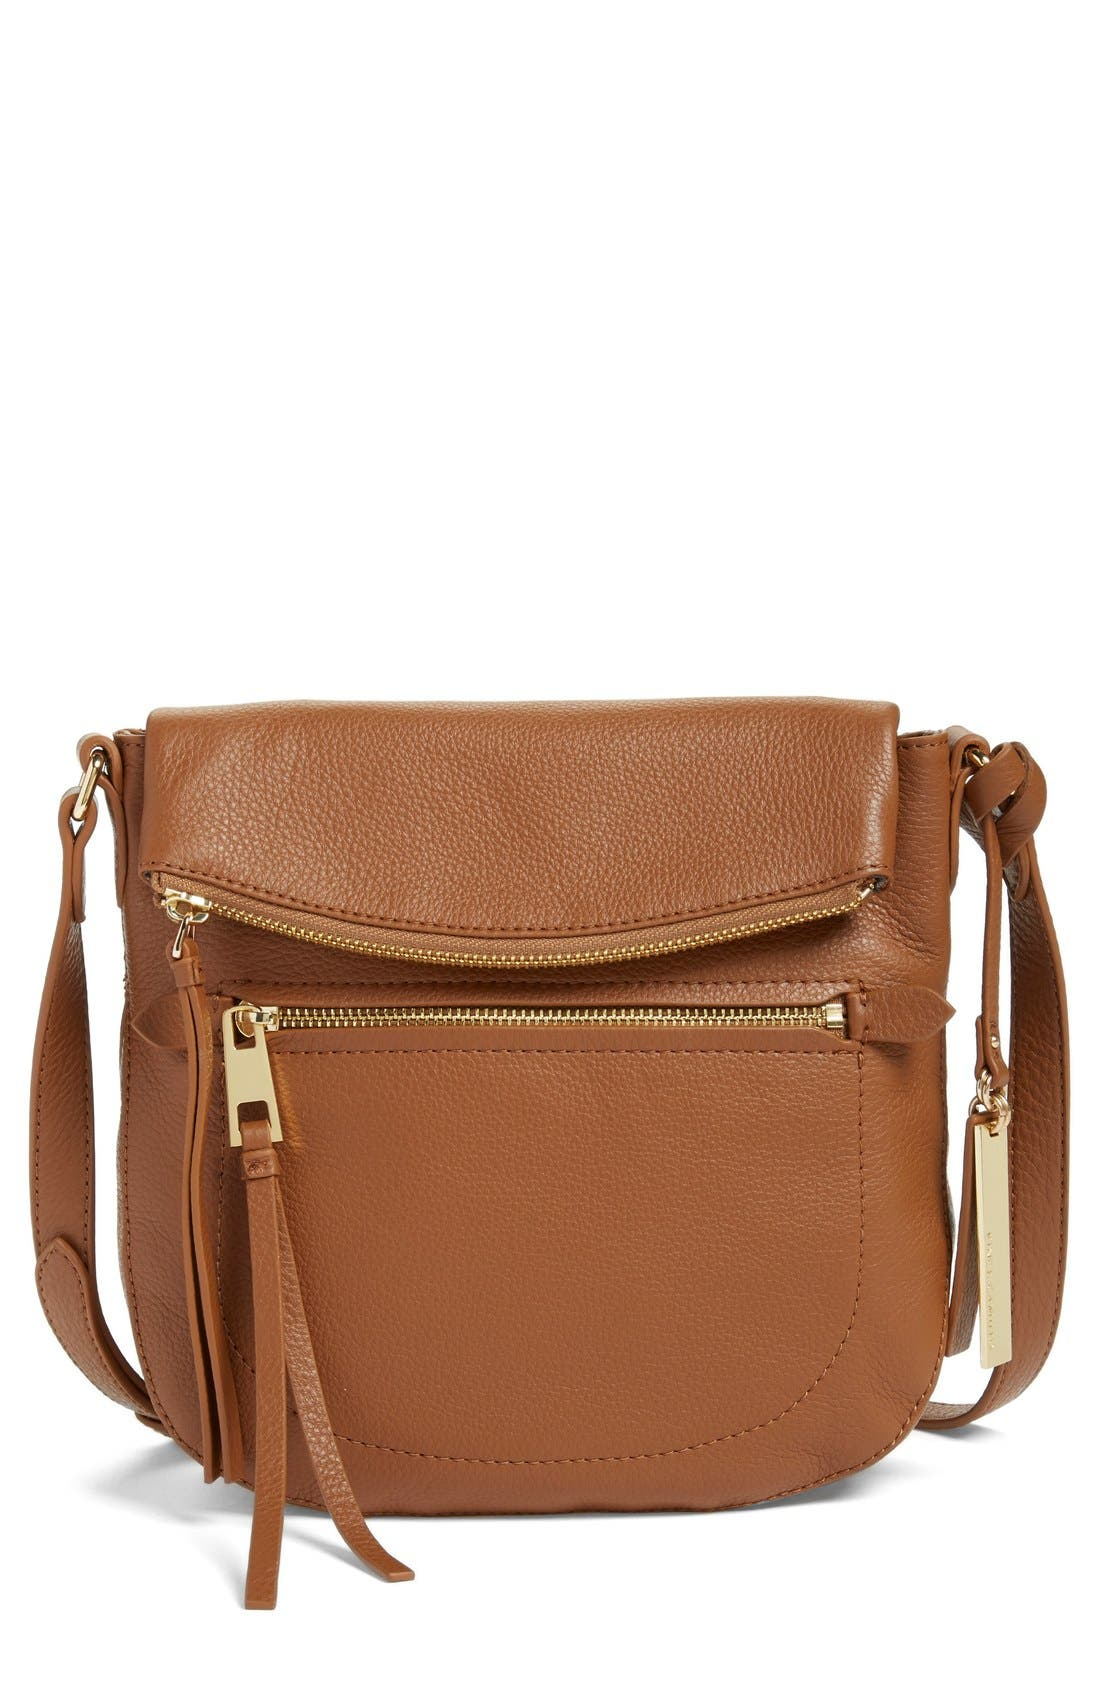 'Tala' Leather Crossbody Bag,                             Main thumbnail 4, color,